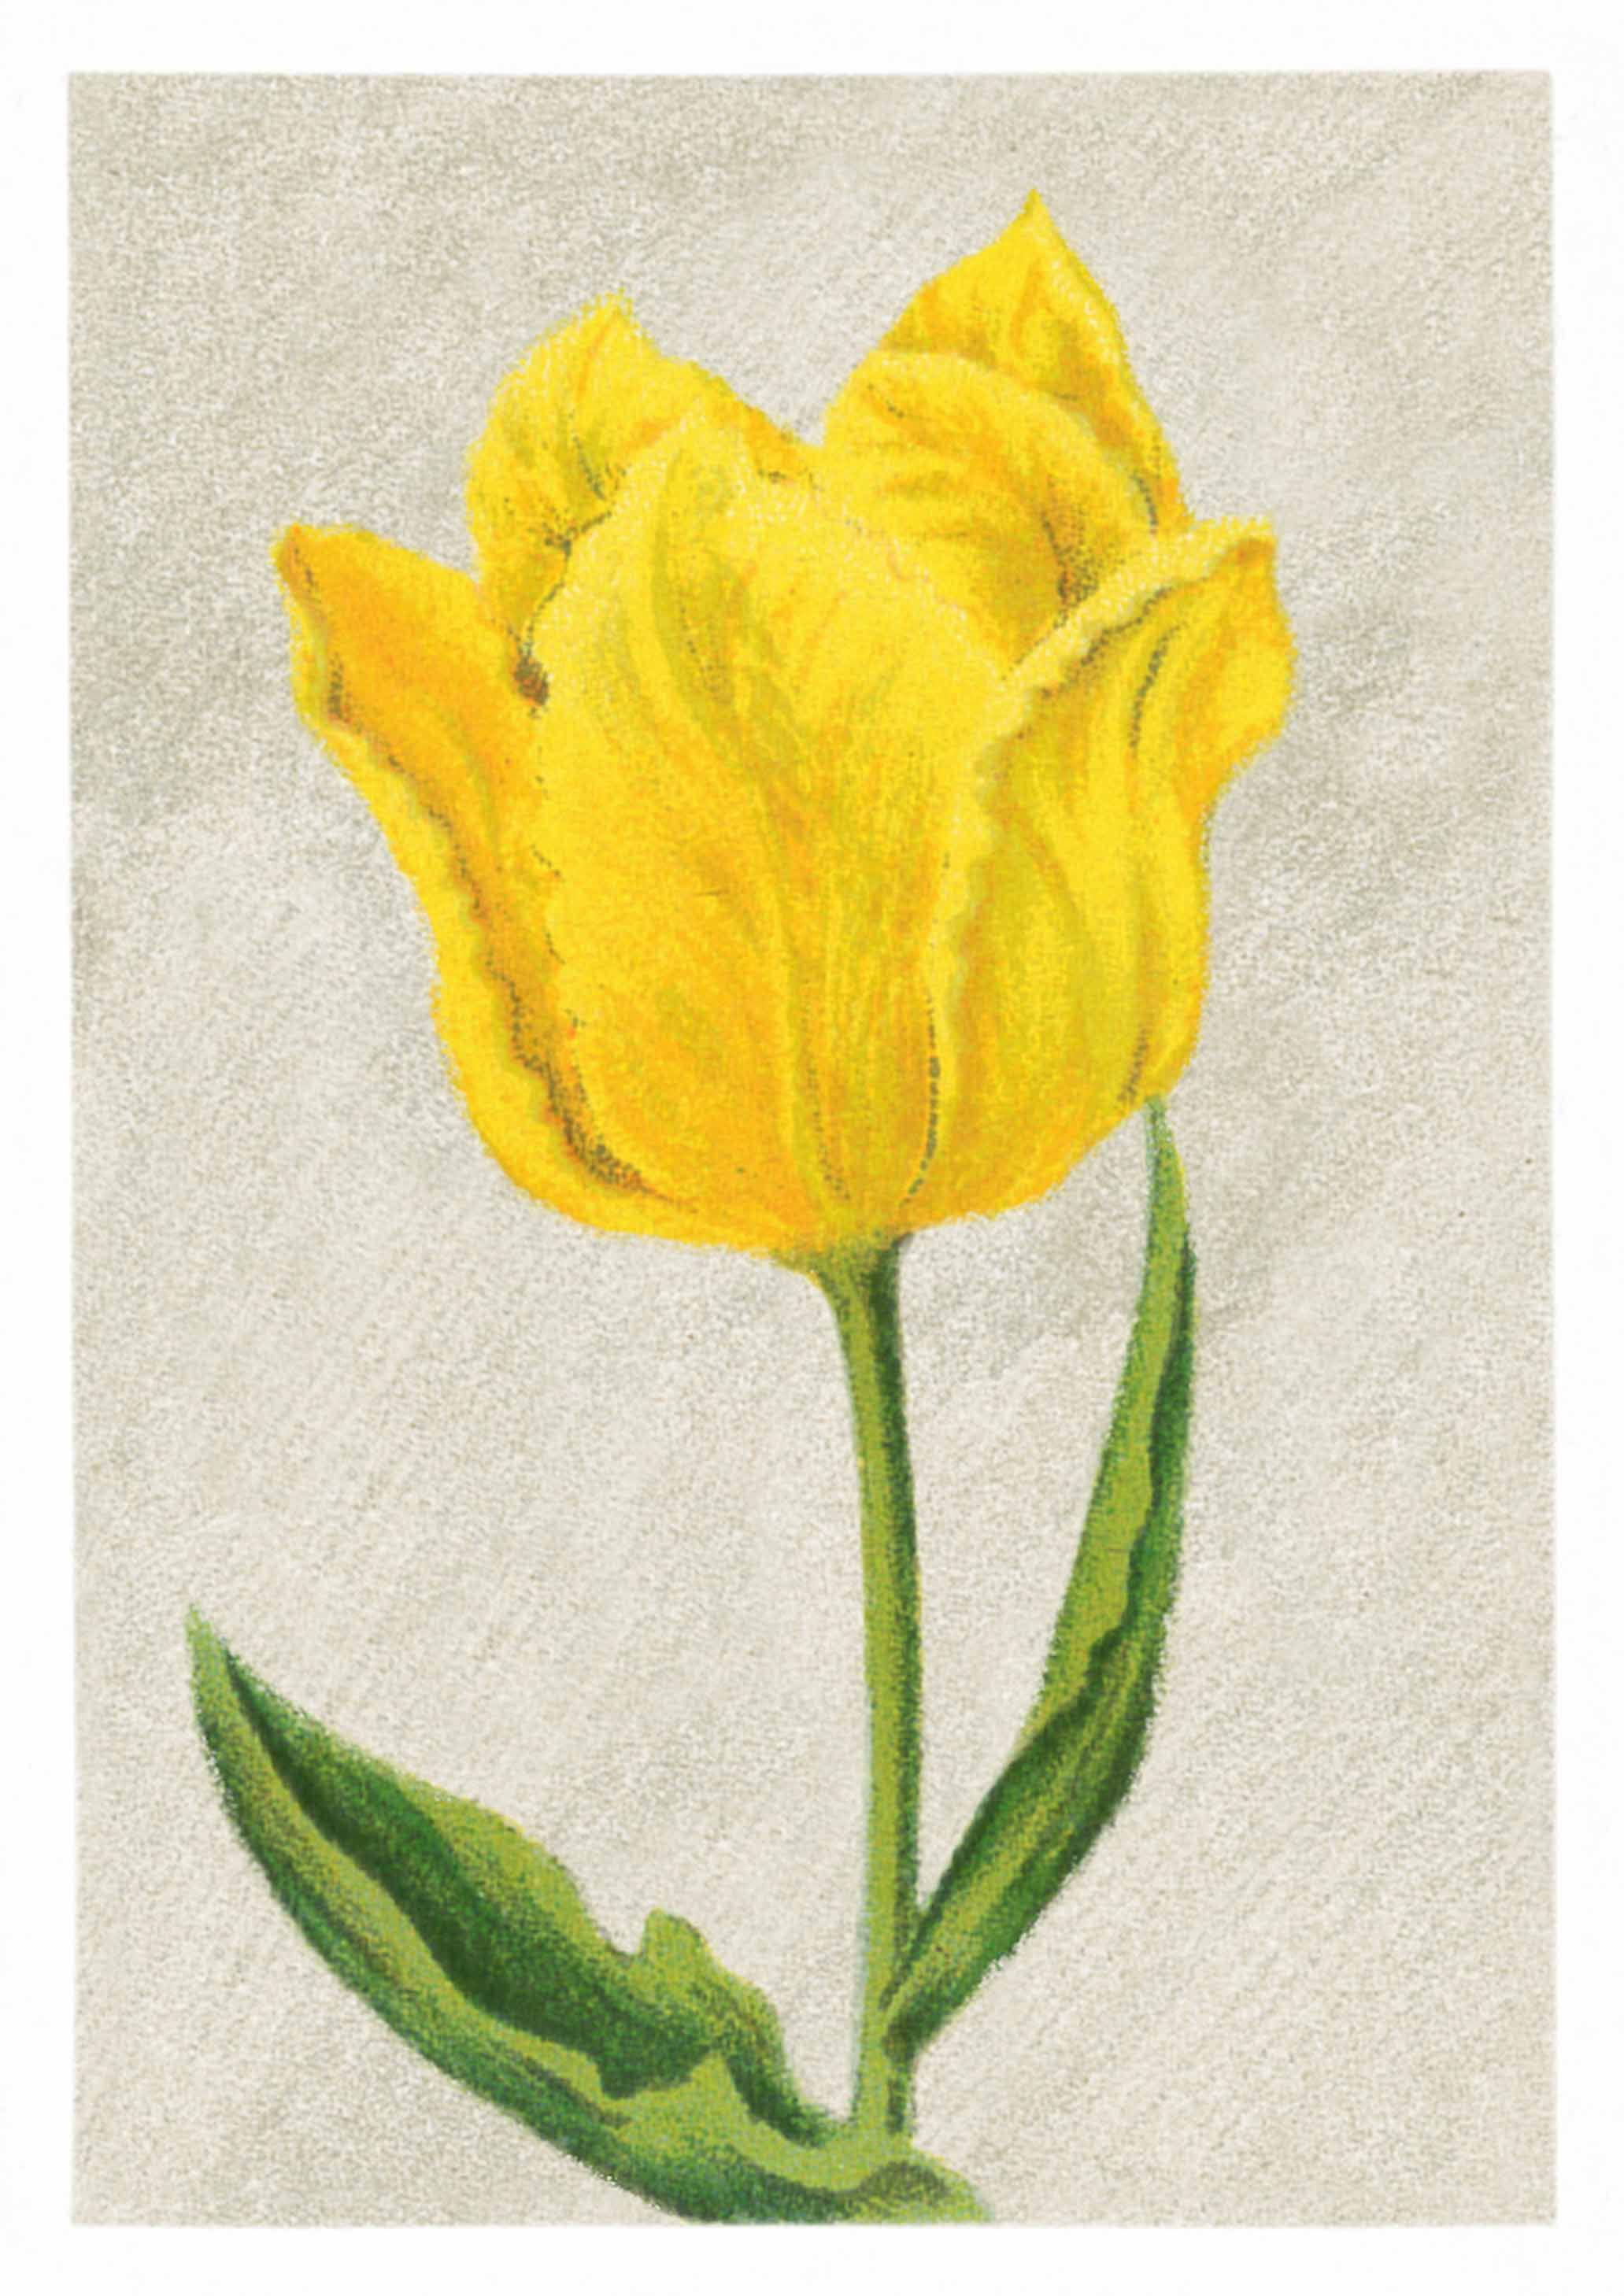 Tulip mon tresor lovely vintage flower drawing that is now available